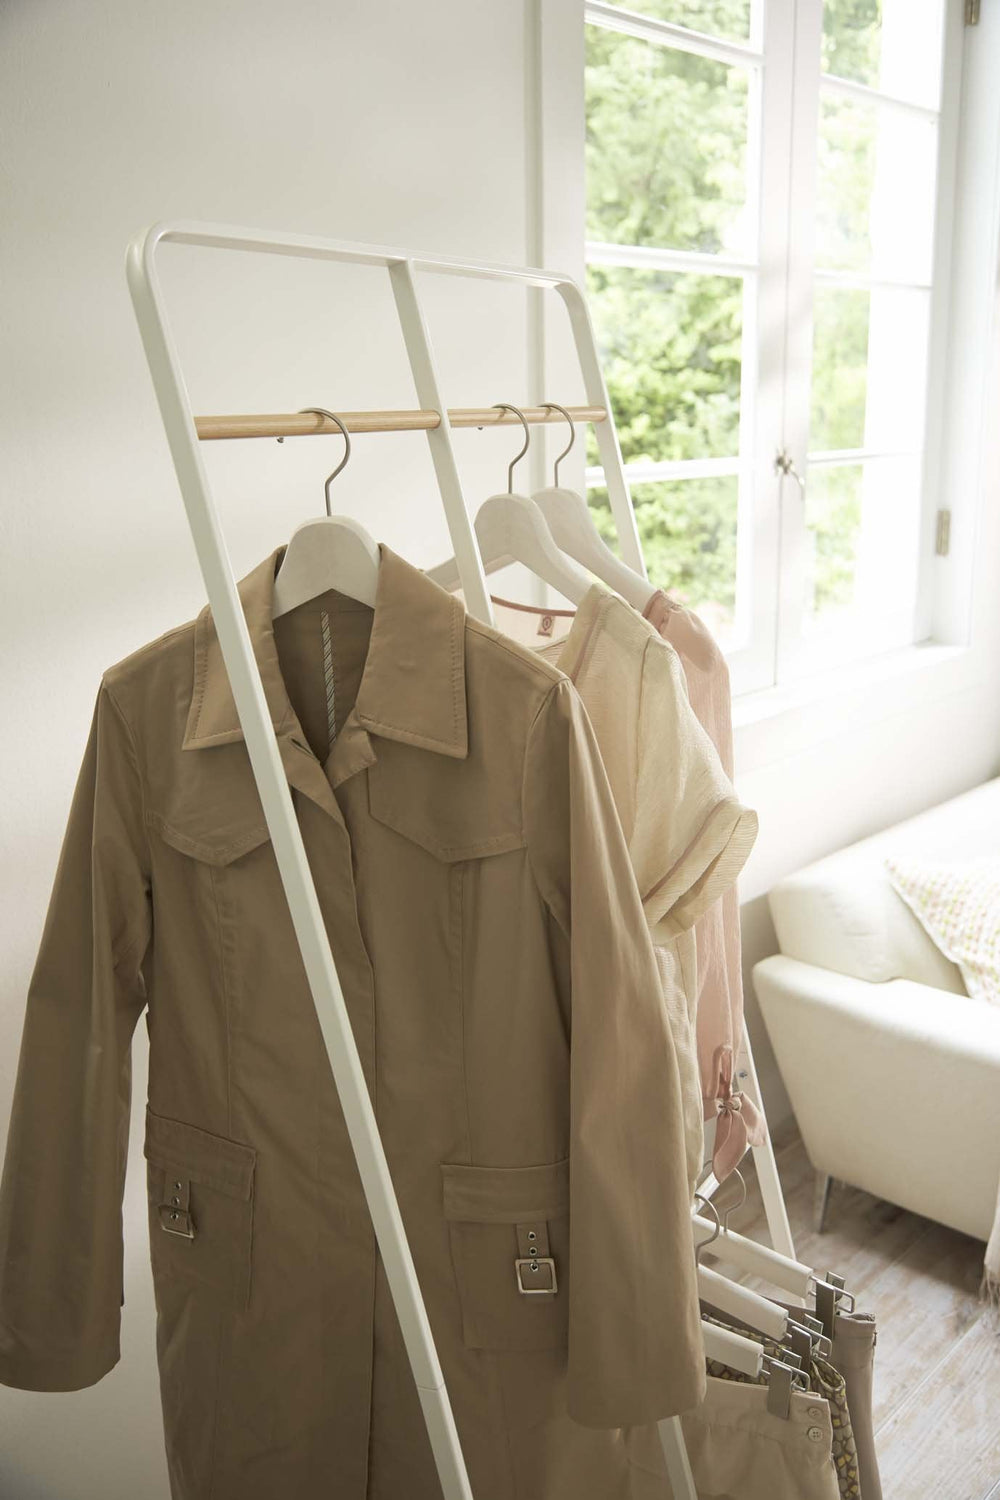 Close-up of white 2-Level Coat Rack by Yamazaki hung with clothes in a sunny room